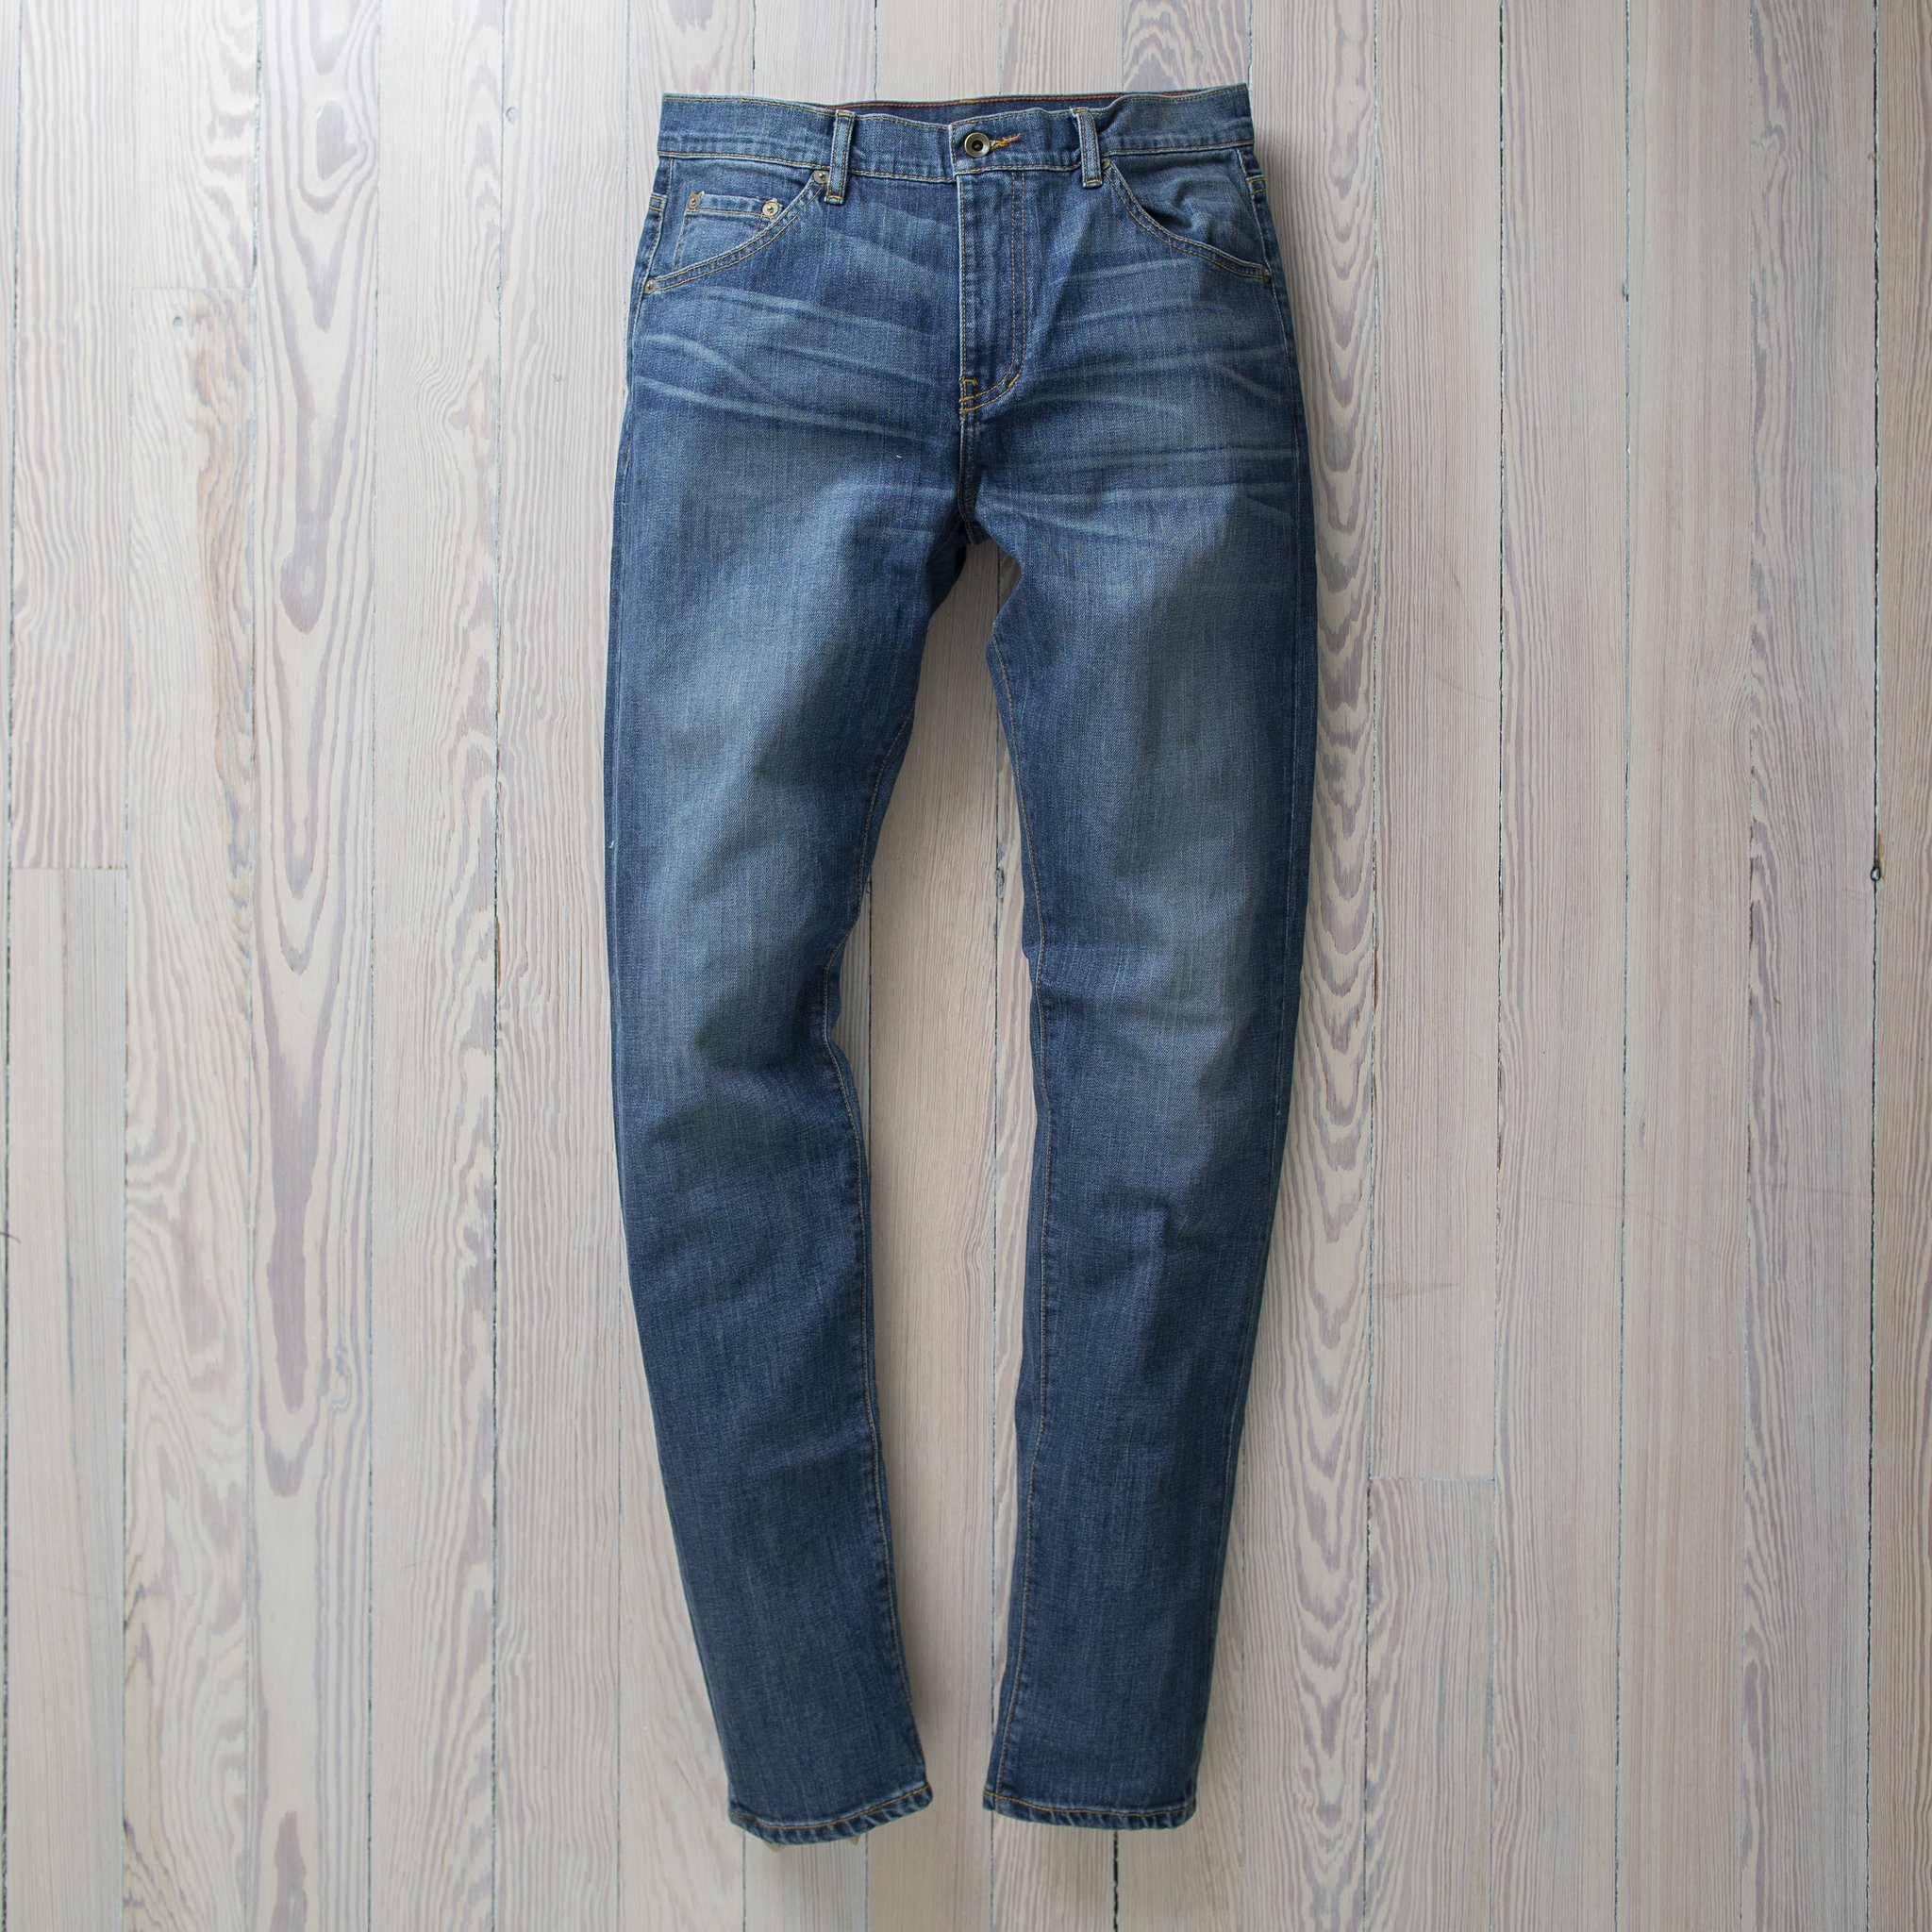 Raleigh Denim Graham Pilot Jeans